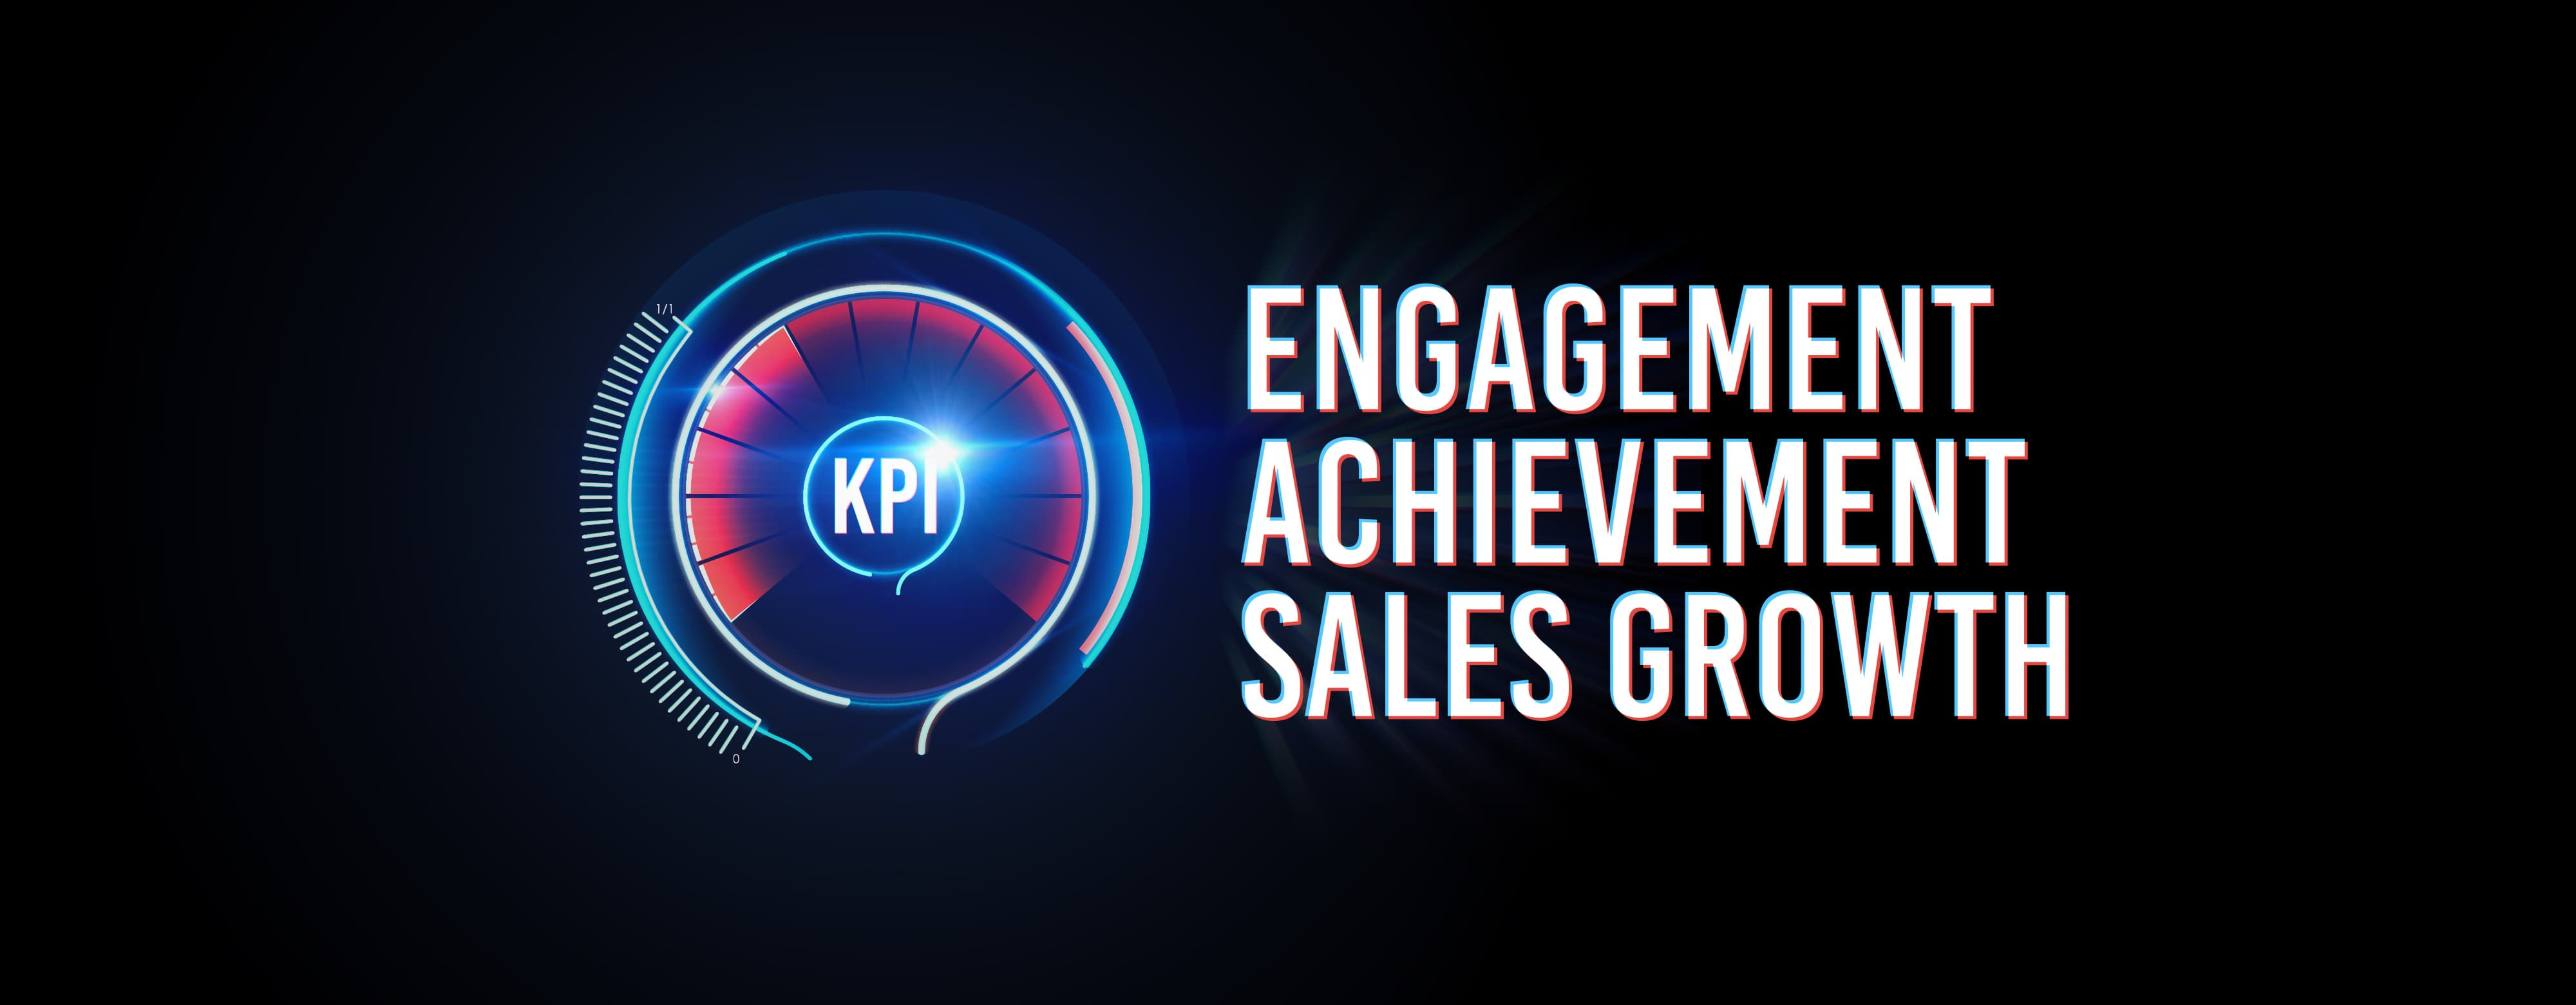 Image reads engagement, achievement and sales growth